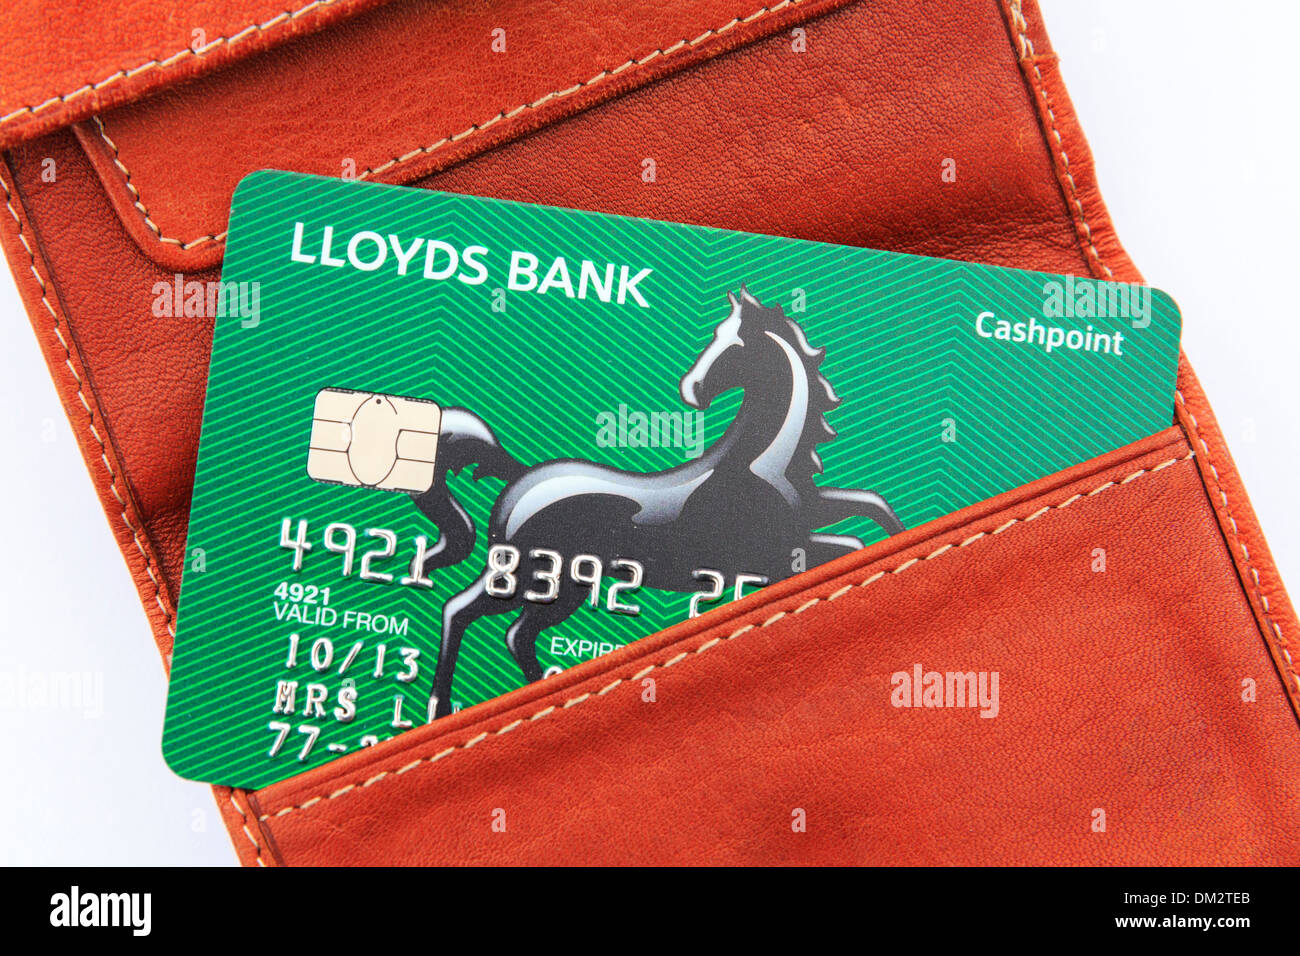 Cut bank card stock photos cut bank card stock images alamy new lloyds bank cashpoint card in a brown leather wallet on a white background england colourmoves